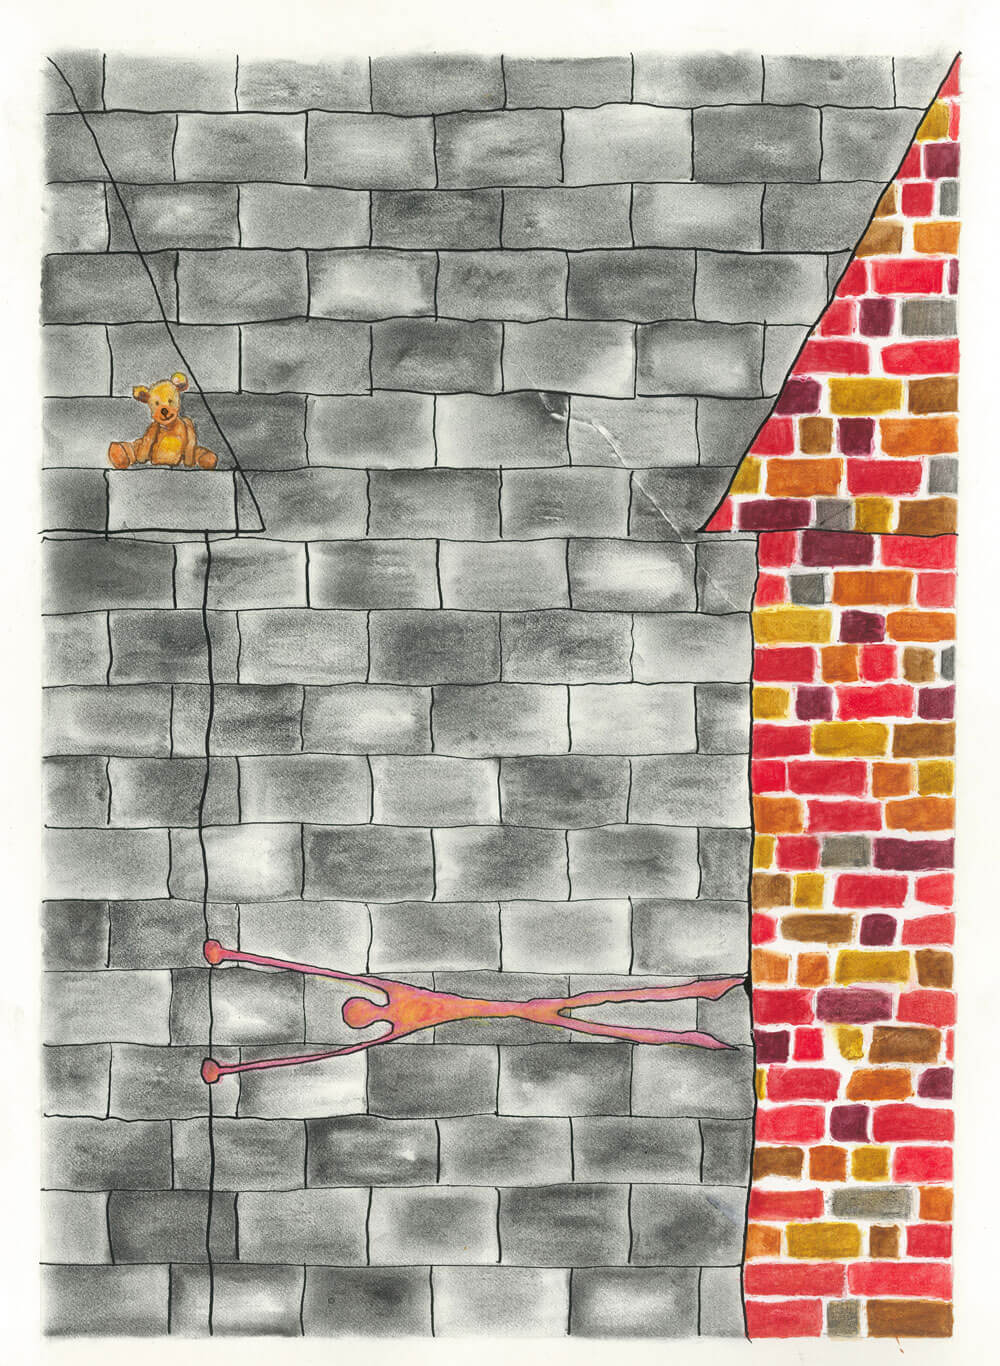 mixed media image with bricks on paper